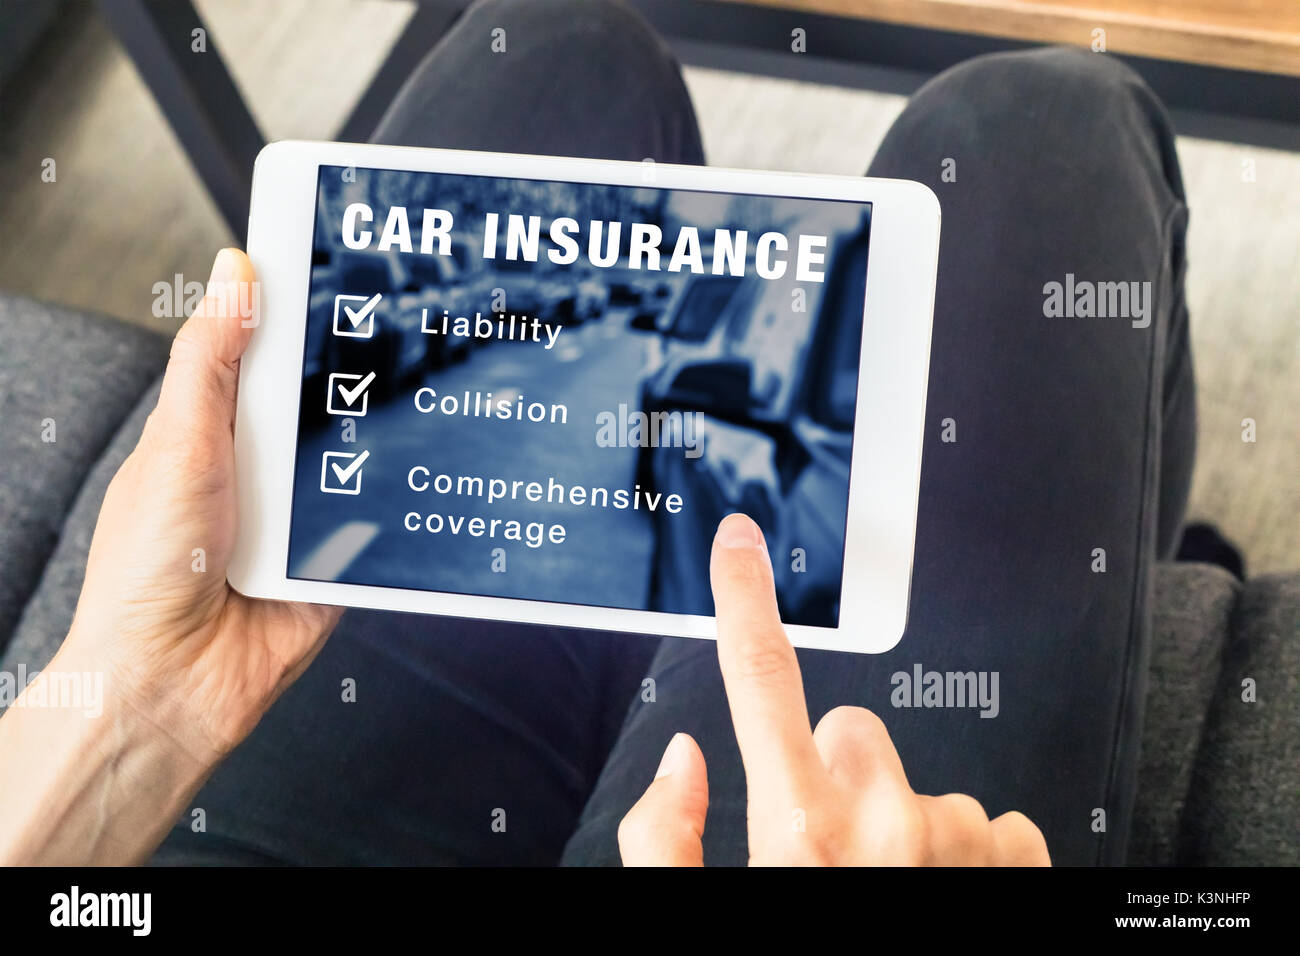 Person choosing car insurance coverage options (liability, collision, comprehensive) on website on digital tablet computer screen, vehicle and risk pr - Stock Image